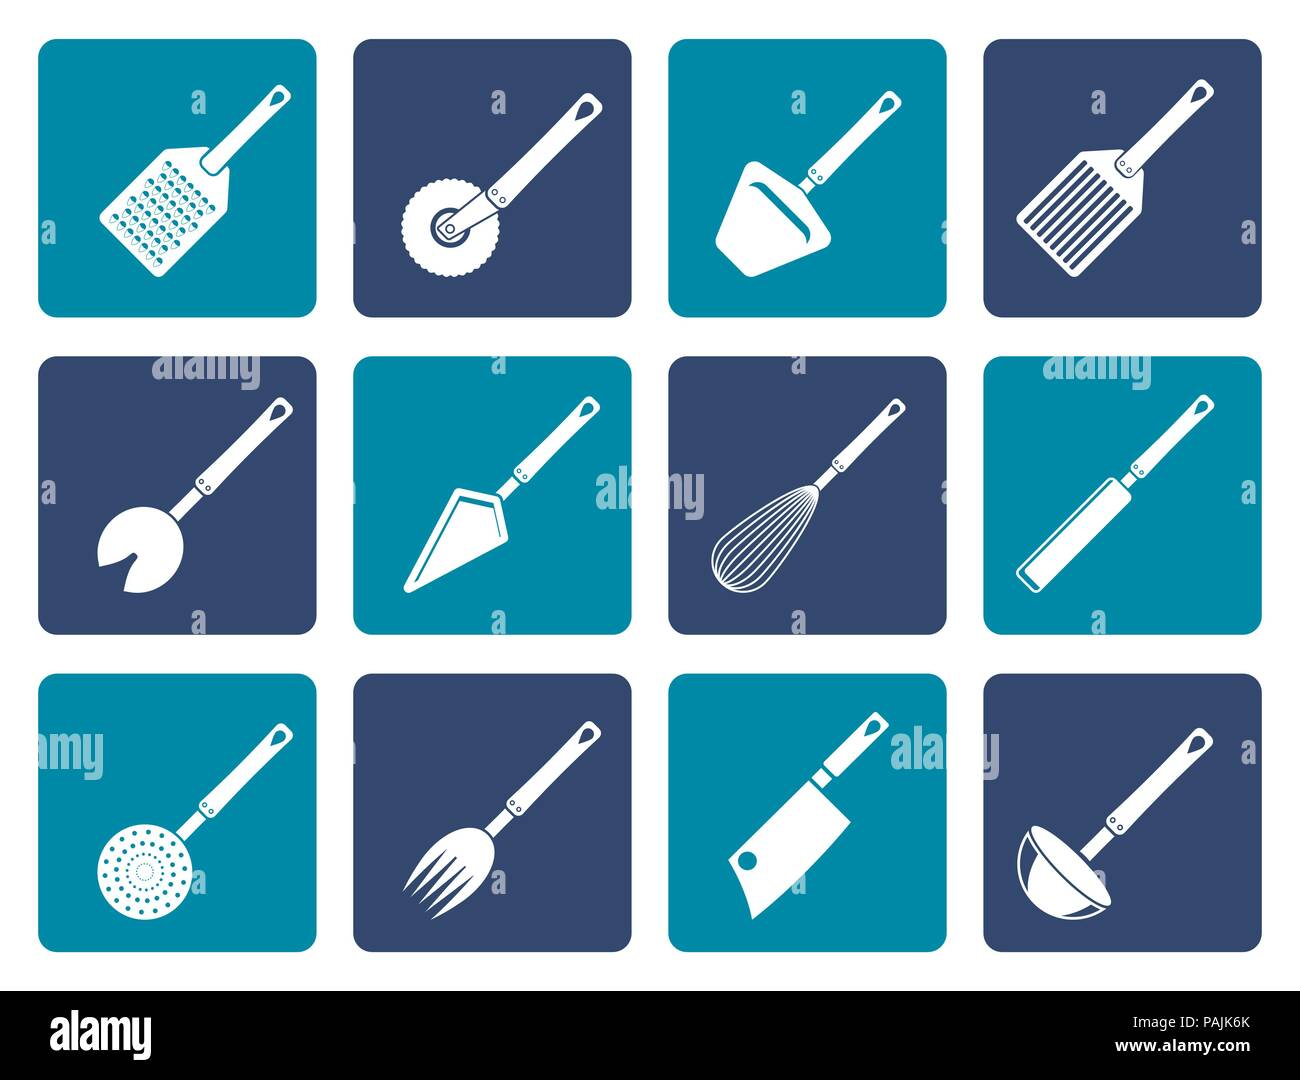 Kitchen Accessories Stock Vector Images - Alamy